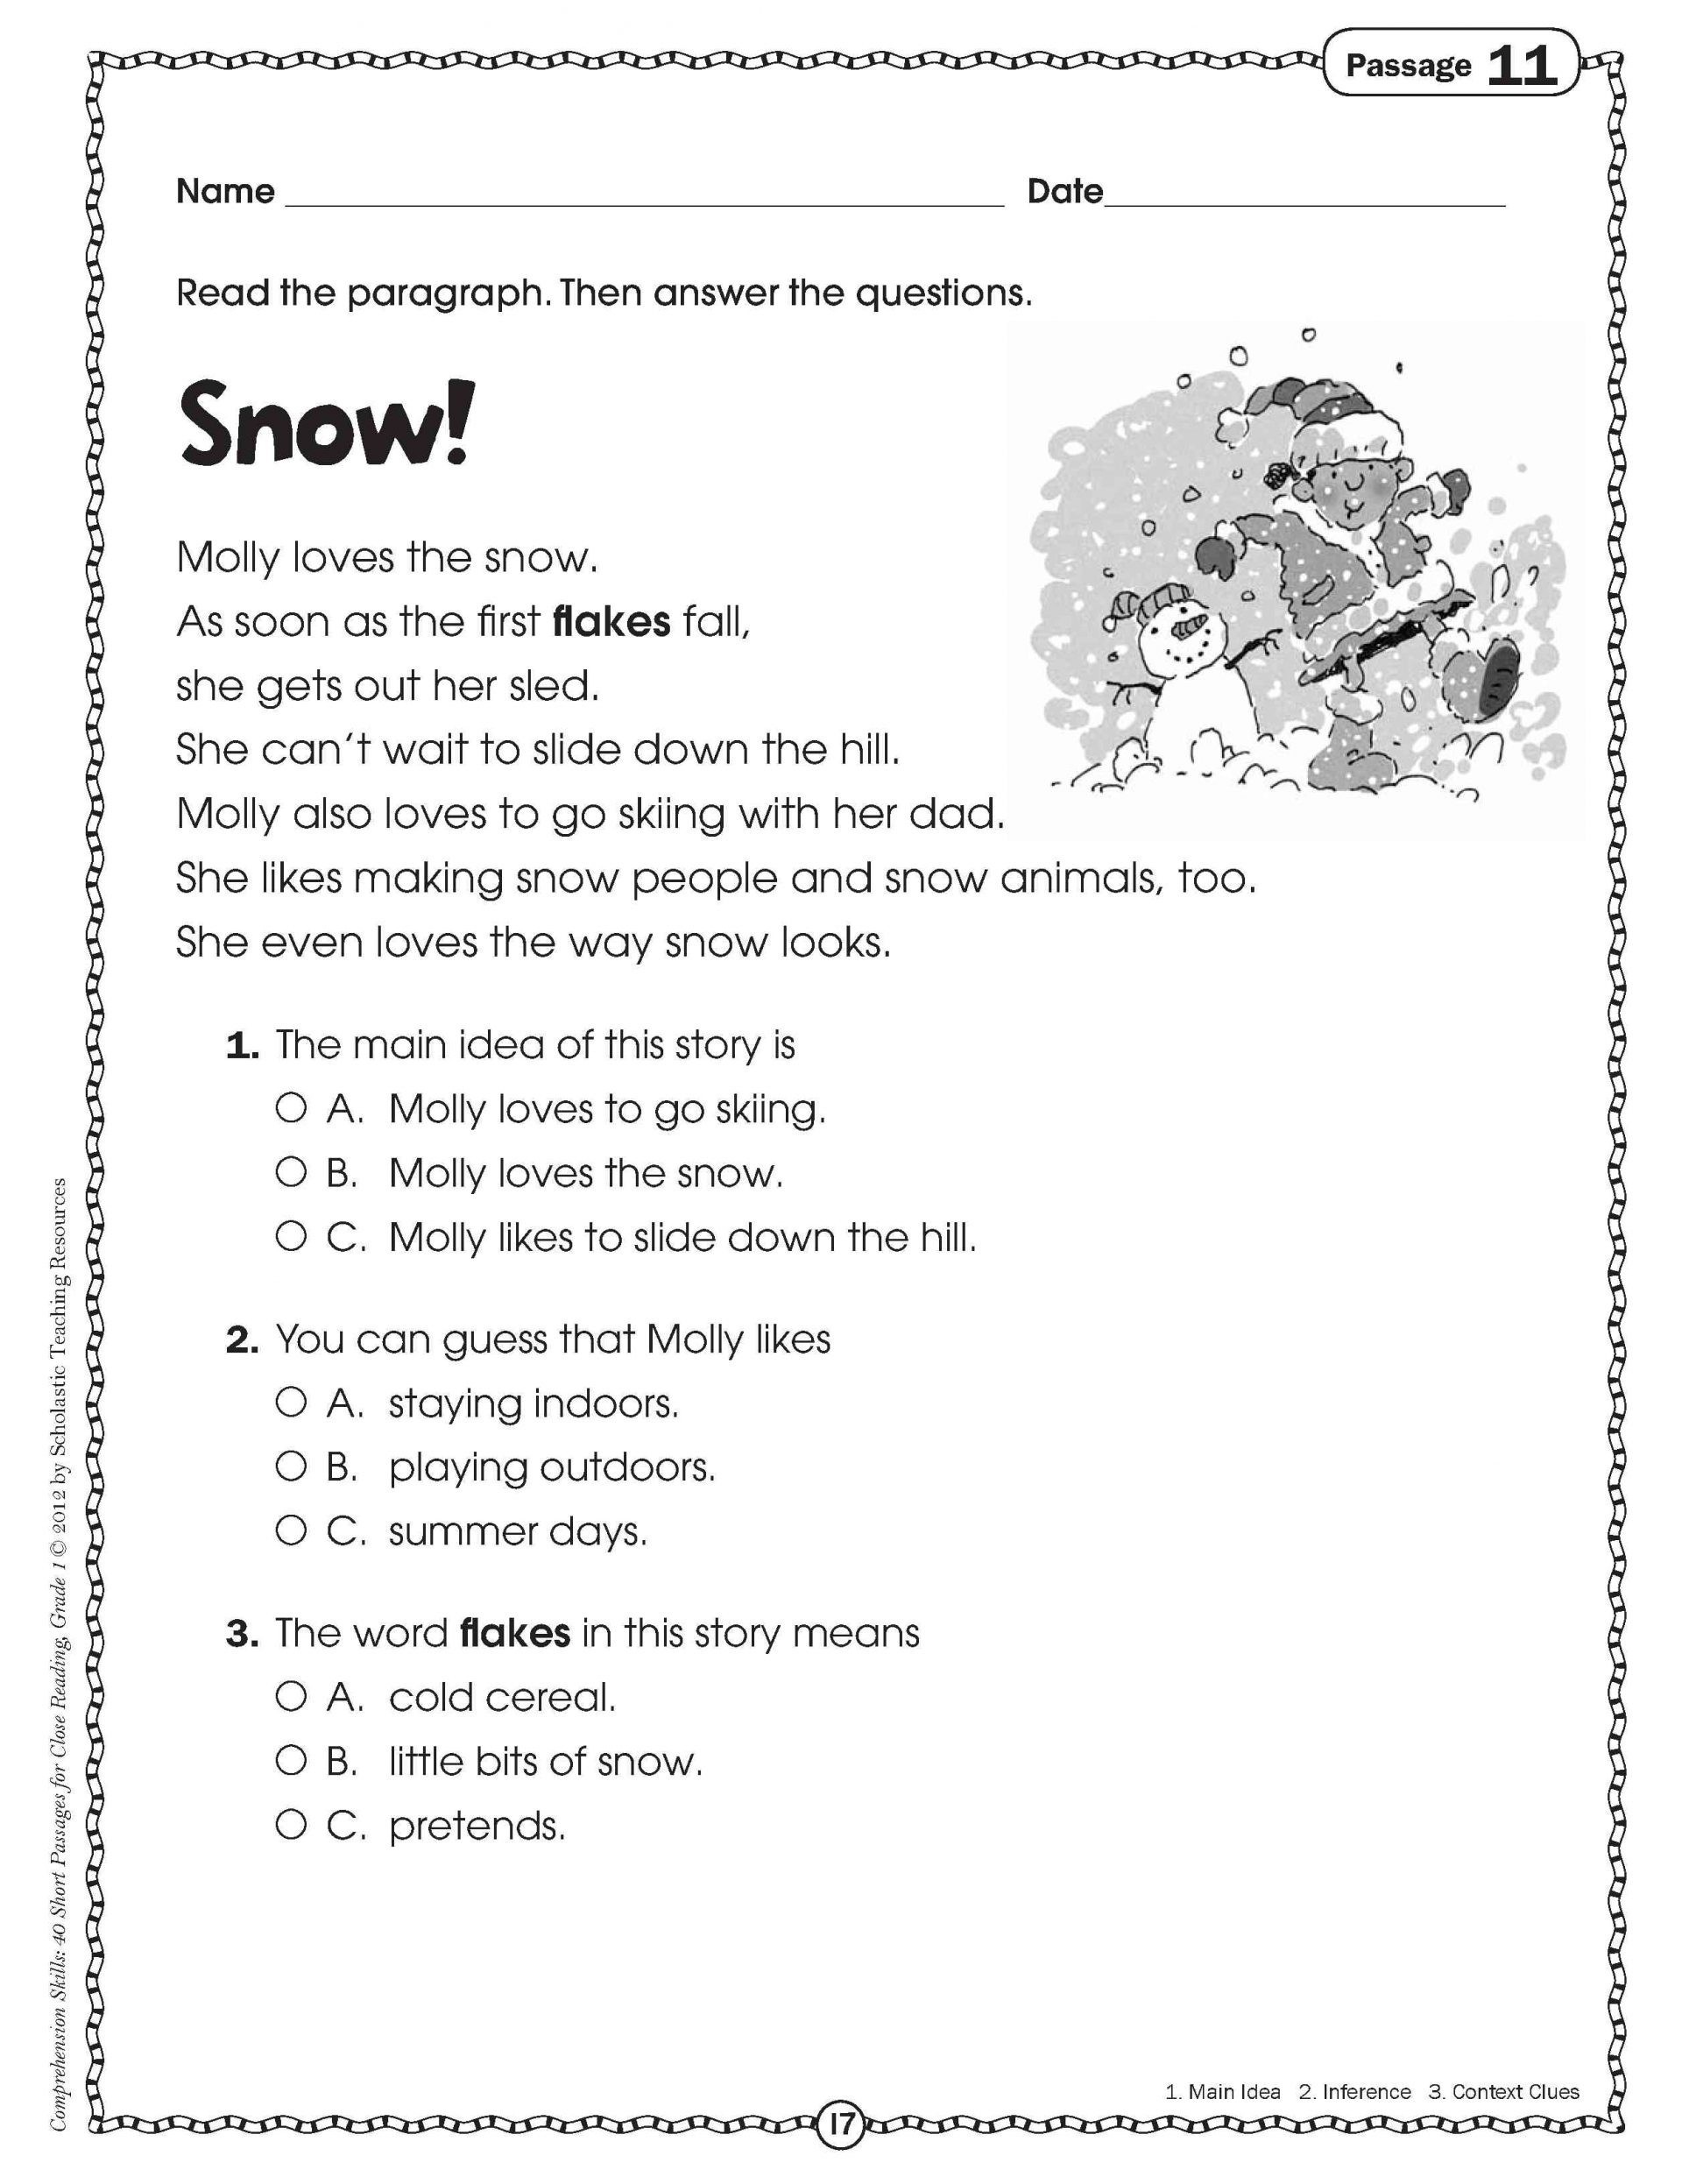 Worksheet: Kindergarten English Worksheets Free 4Th Grade - Free Printable Stories For 4Th Graders